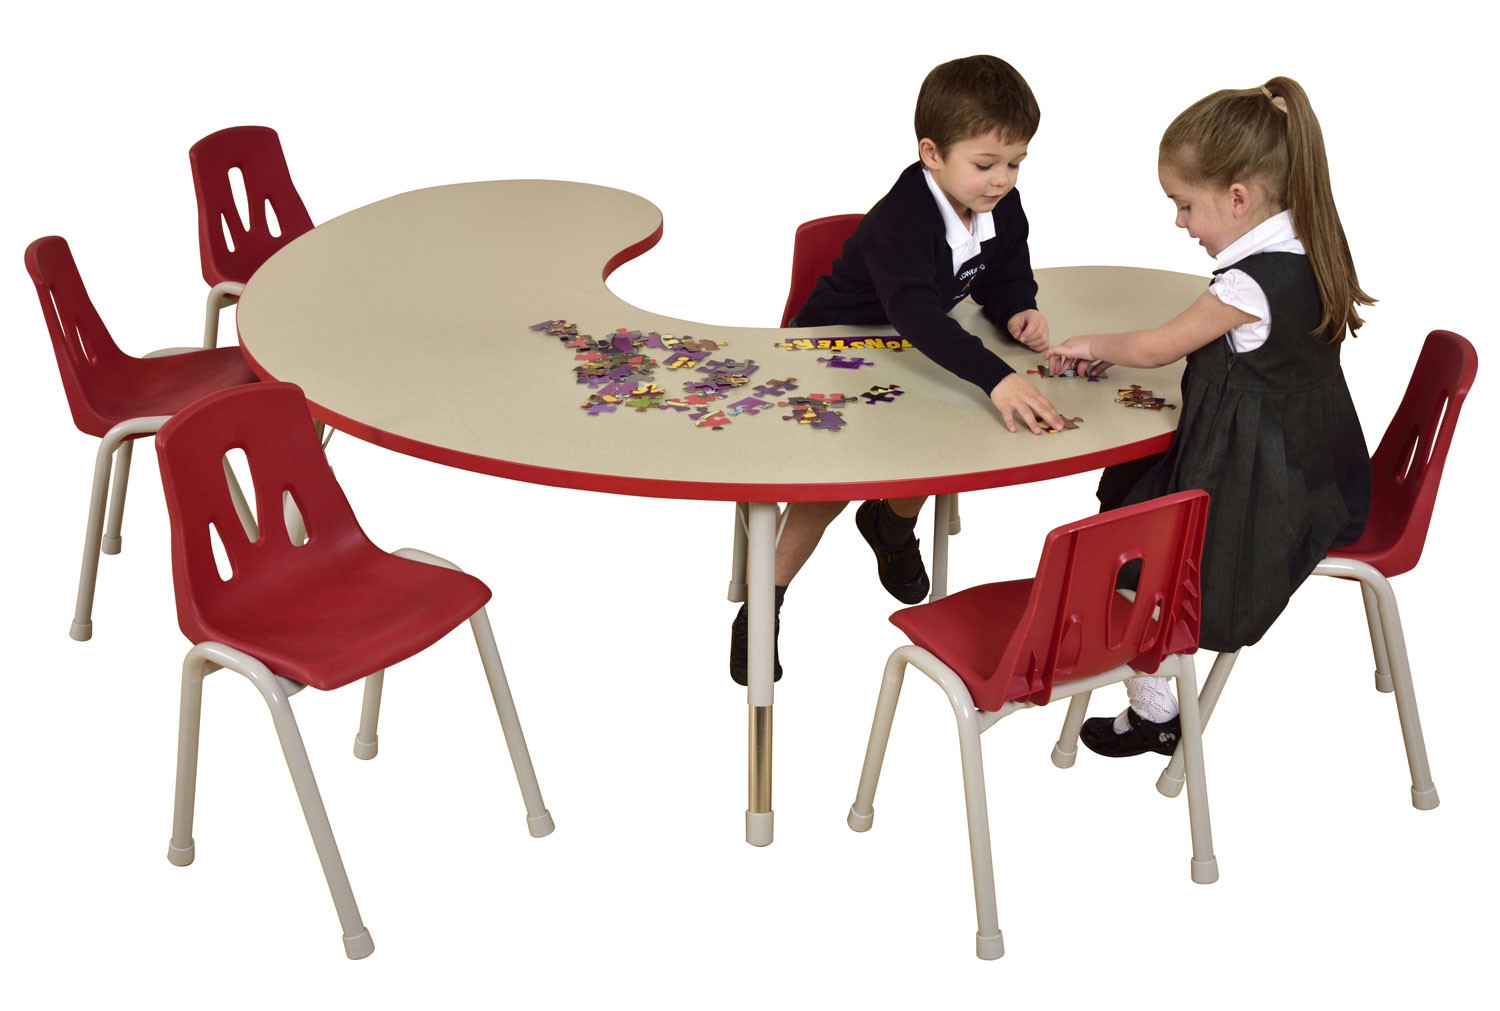 Thrifty Group Table